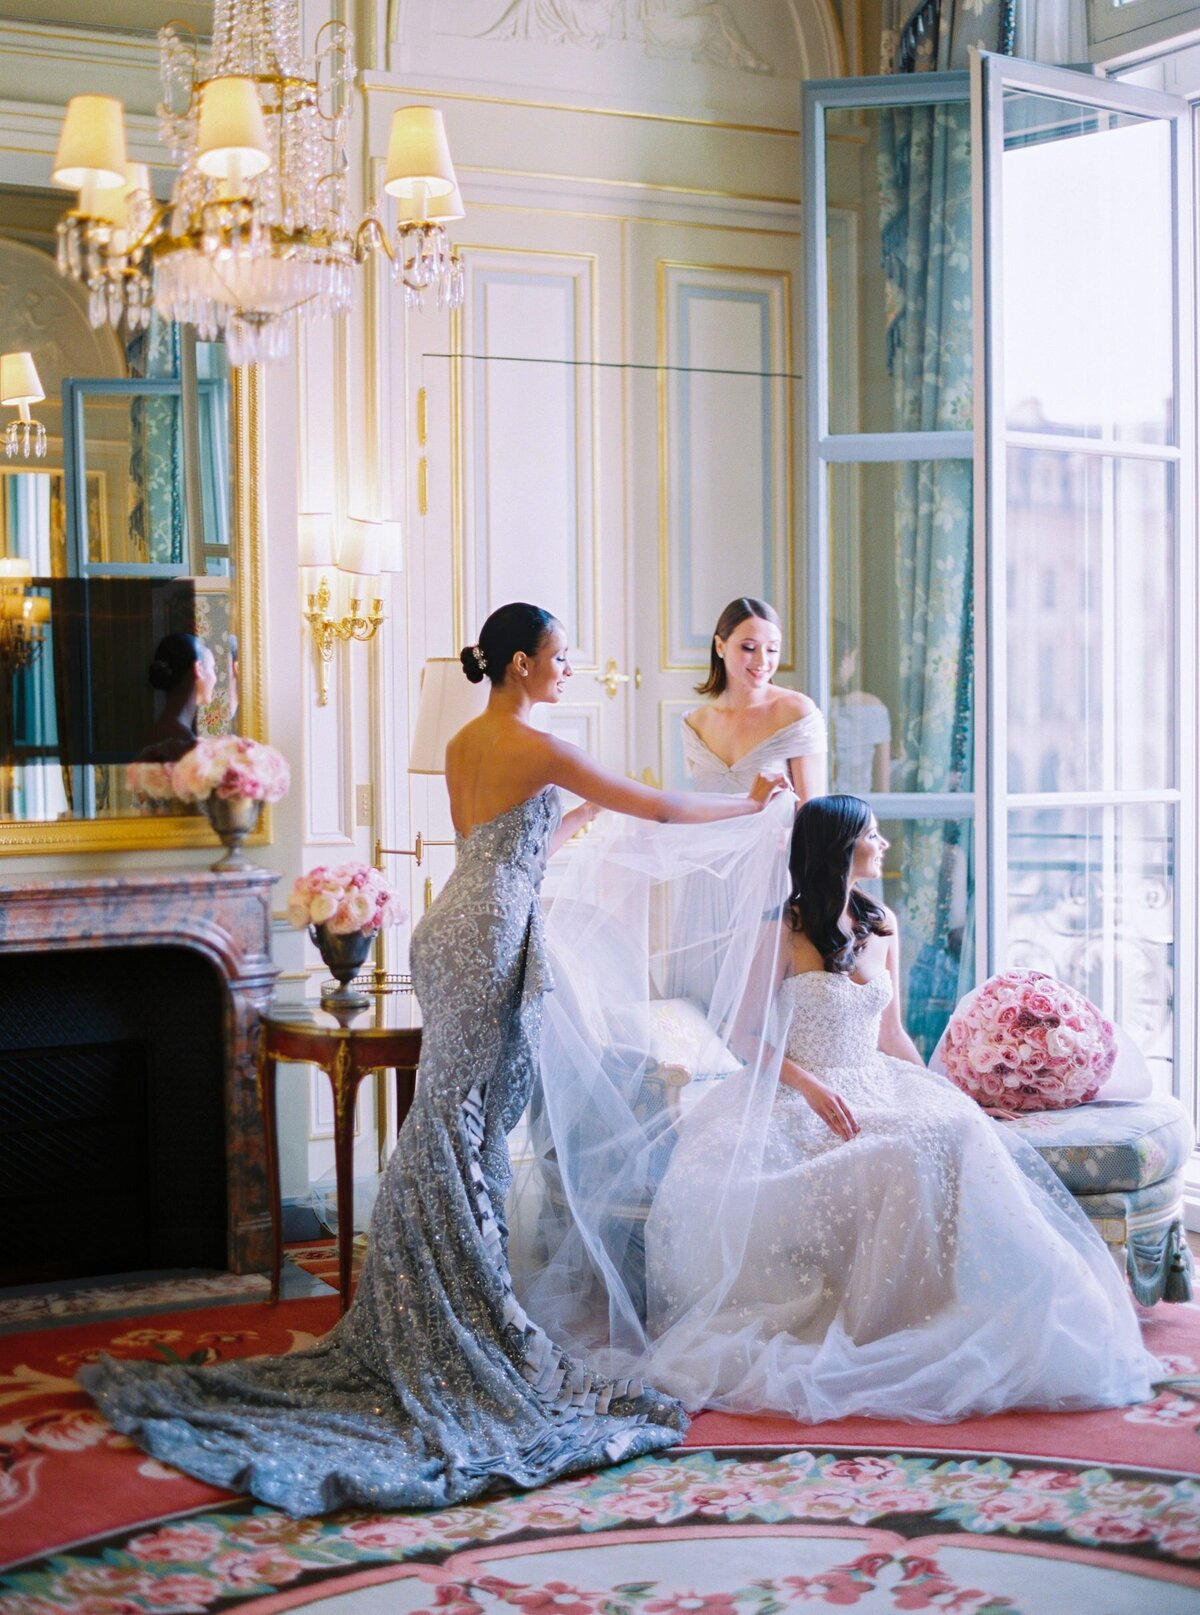 wedding-photographer-in-ritz-paris (21 of 29)